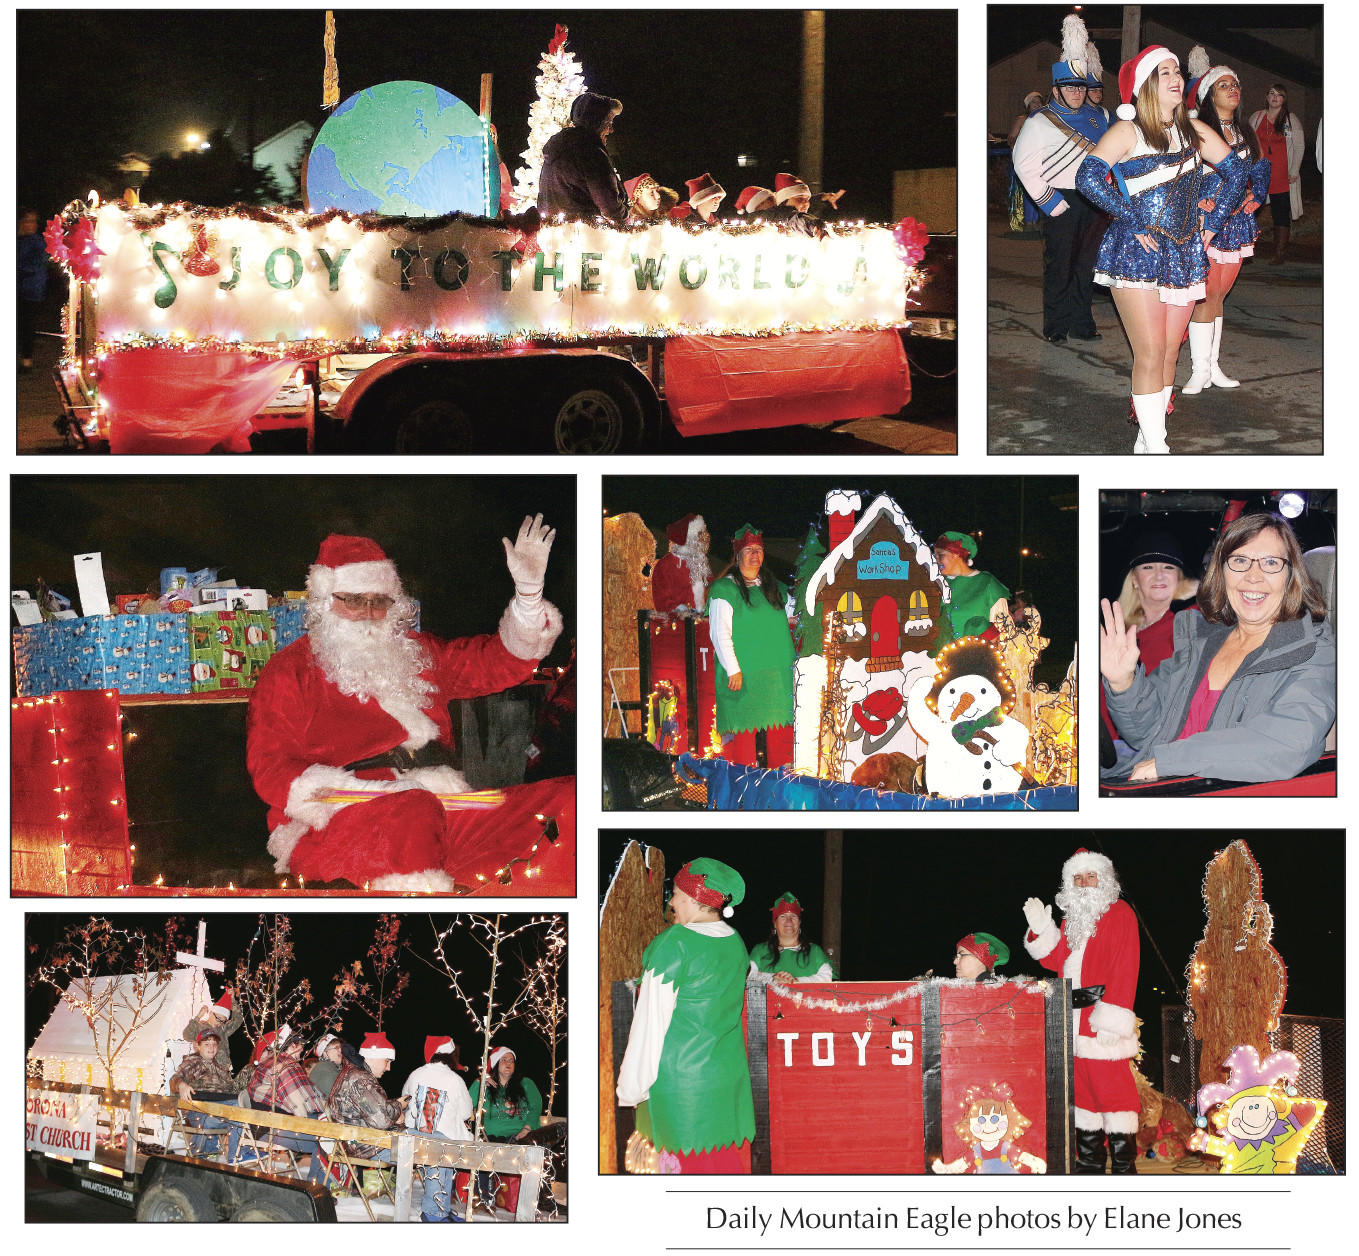 Colorful floats, the Curry High School Marching Band and Santa were part of the annual Christmas Parade held in Parrish Thursday night. The floats were sponsored by various business and churches in the community and were decked out in Christmas lights and decorations to get everyone in the holiday spirit.